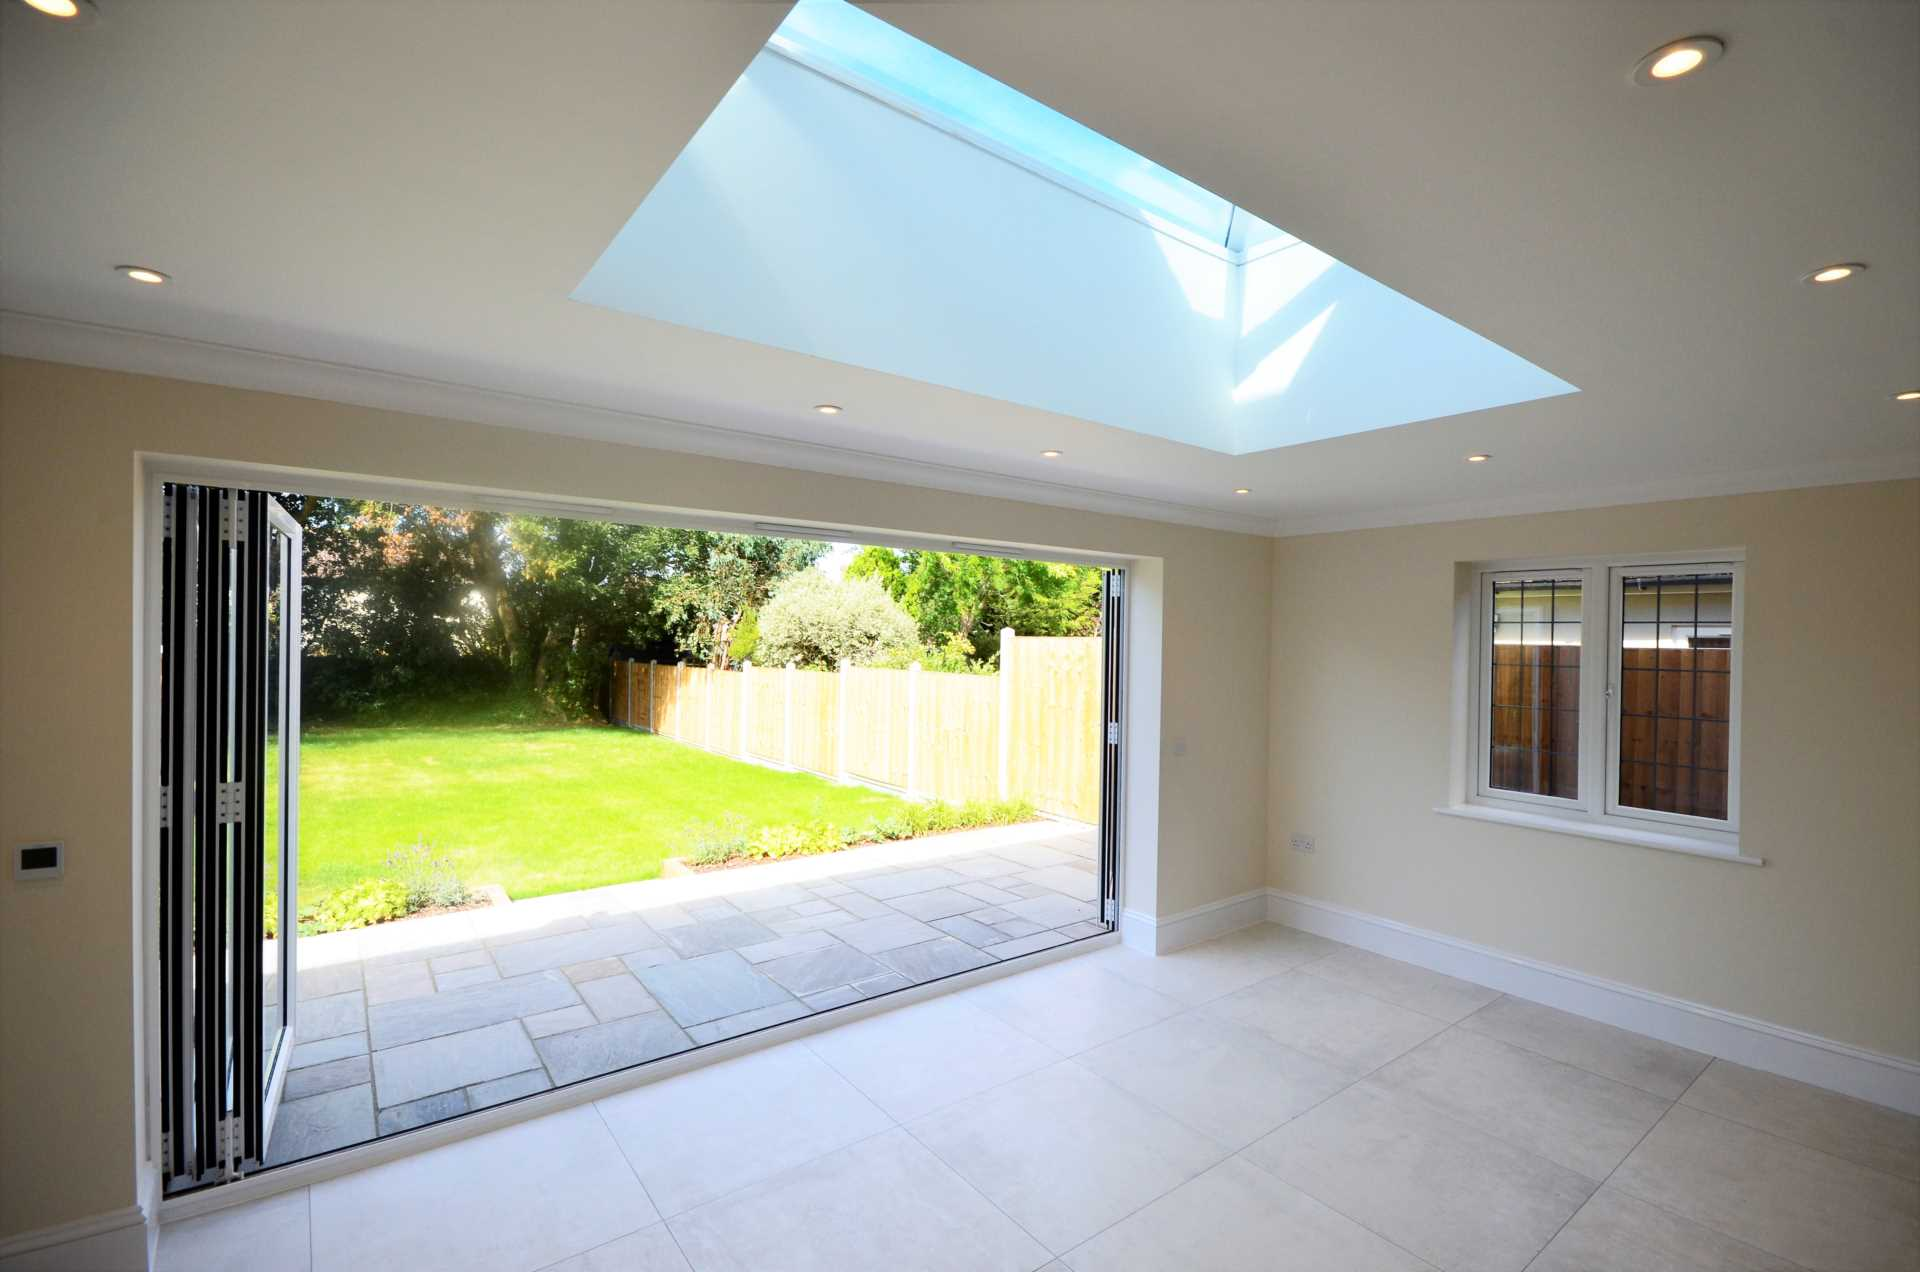 Norsey View Drive, Billericay, Image 6